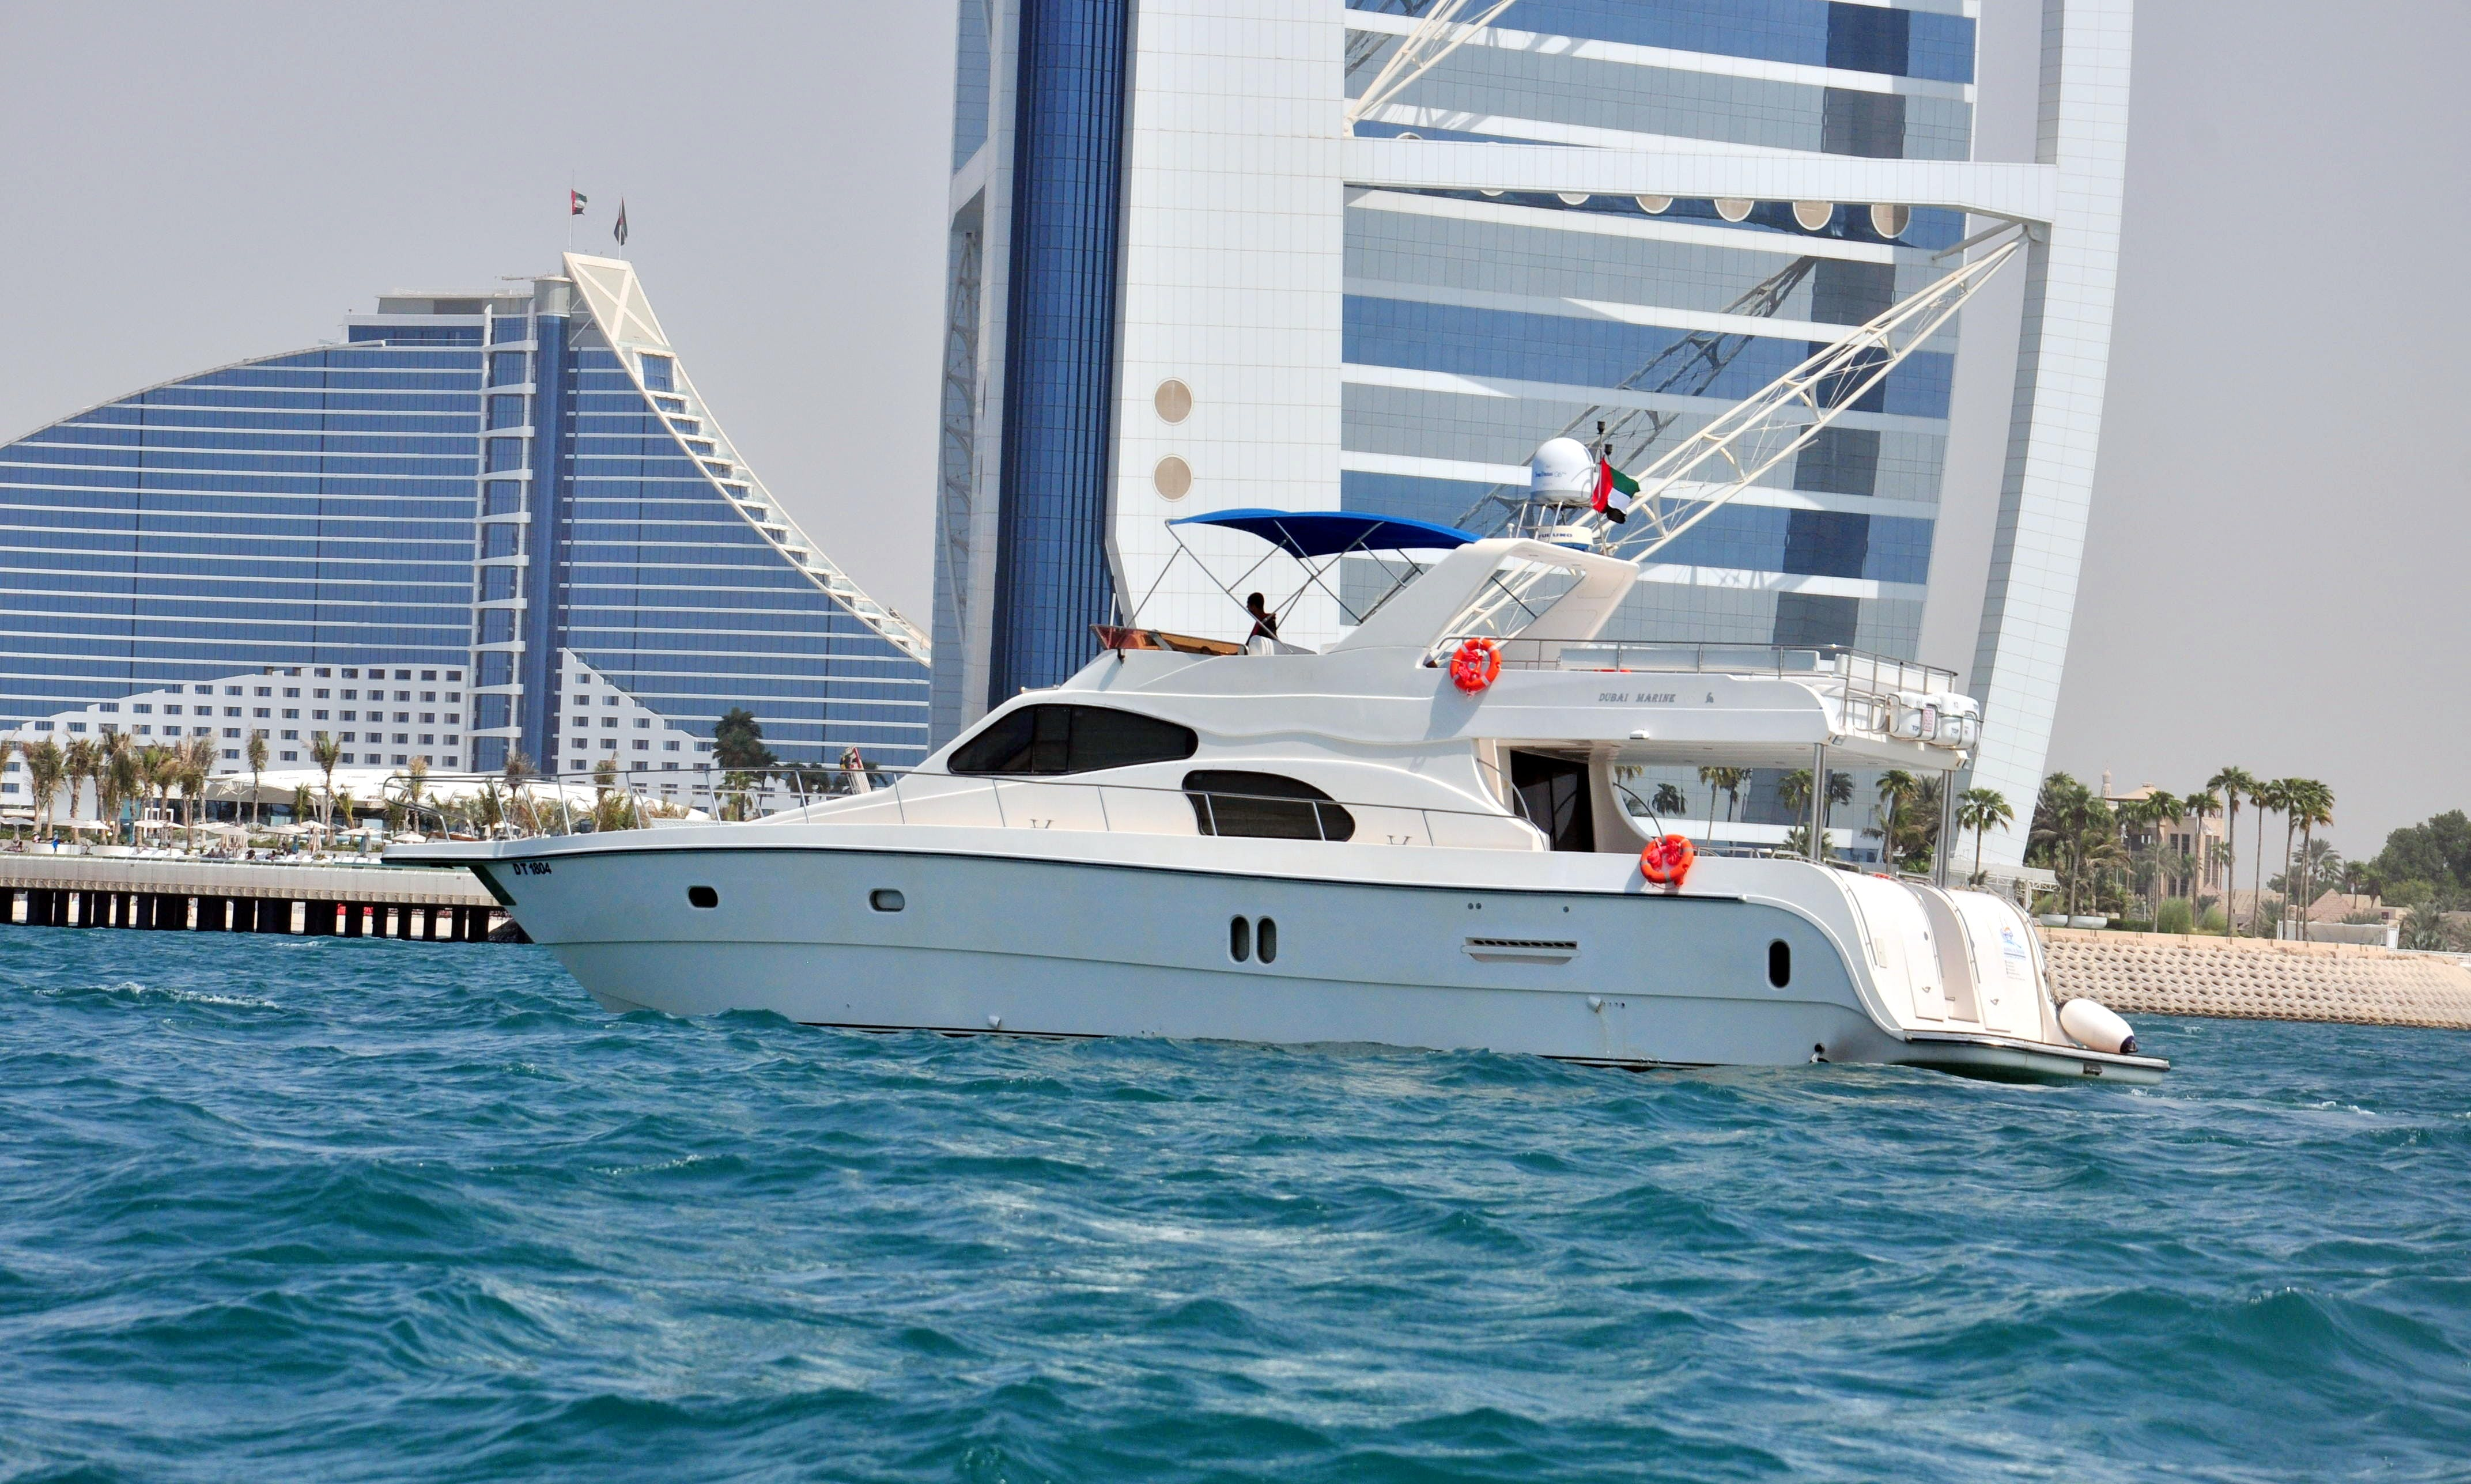 Excellent offshore Cruising Experience in Dubai, UAE